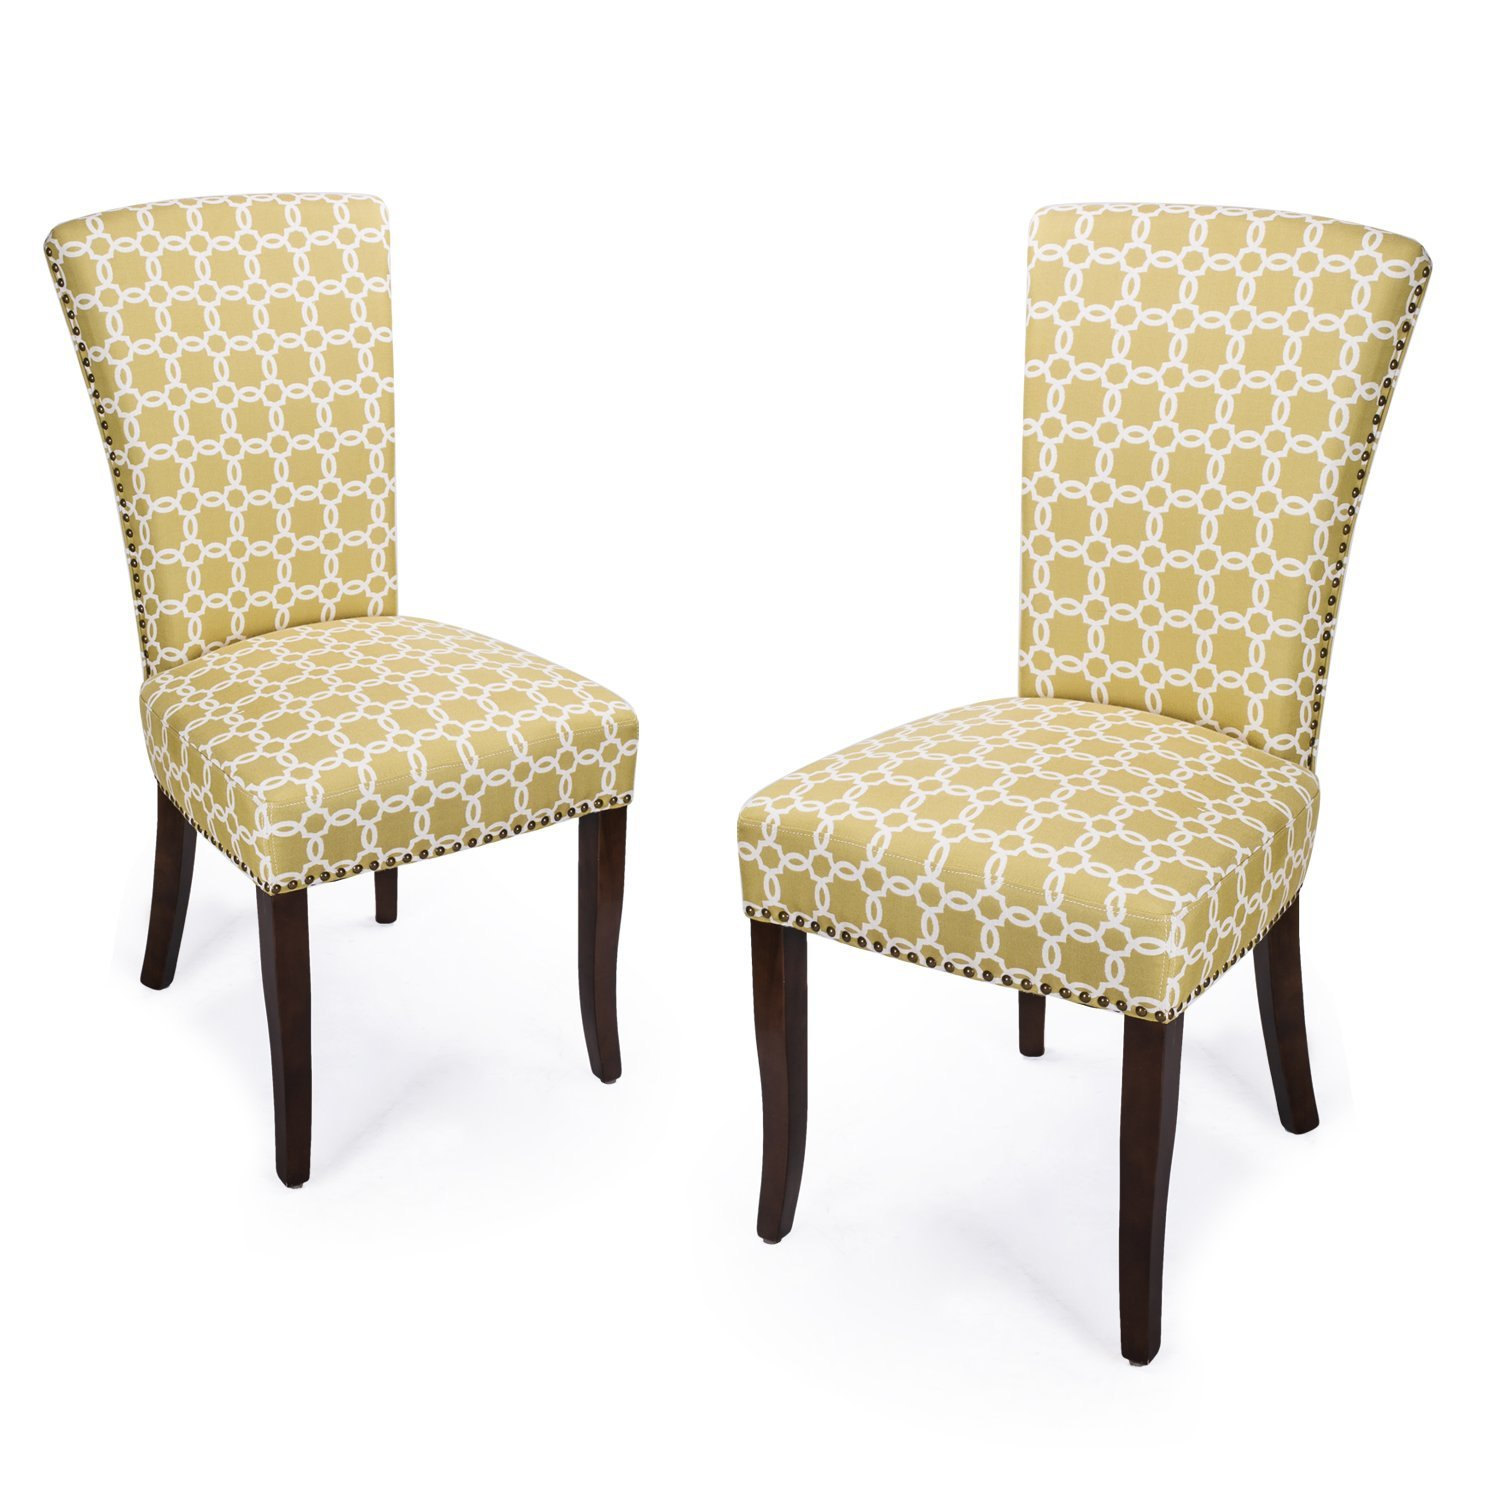 Adeco Floral Living Dining Chair with Birch Legs Set of